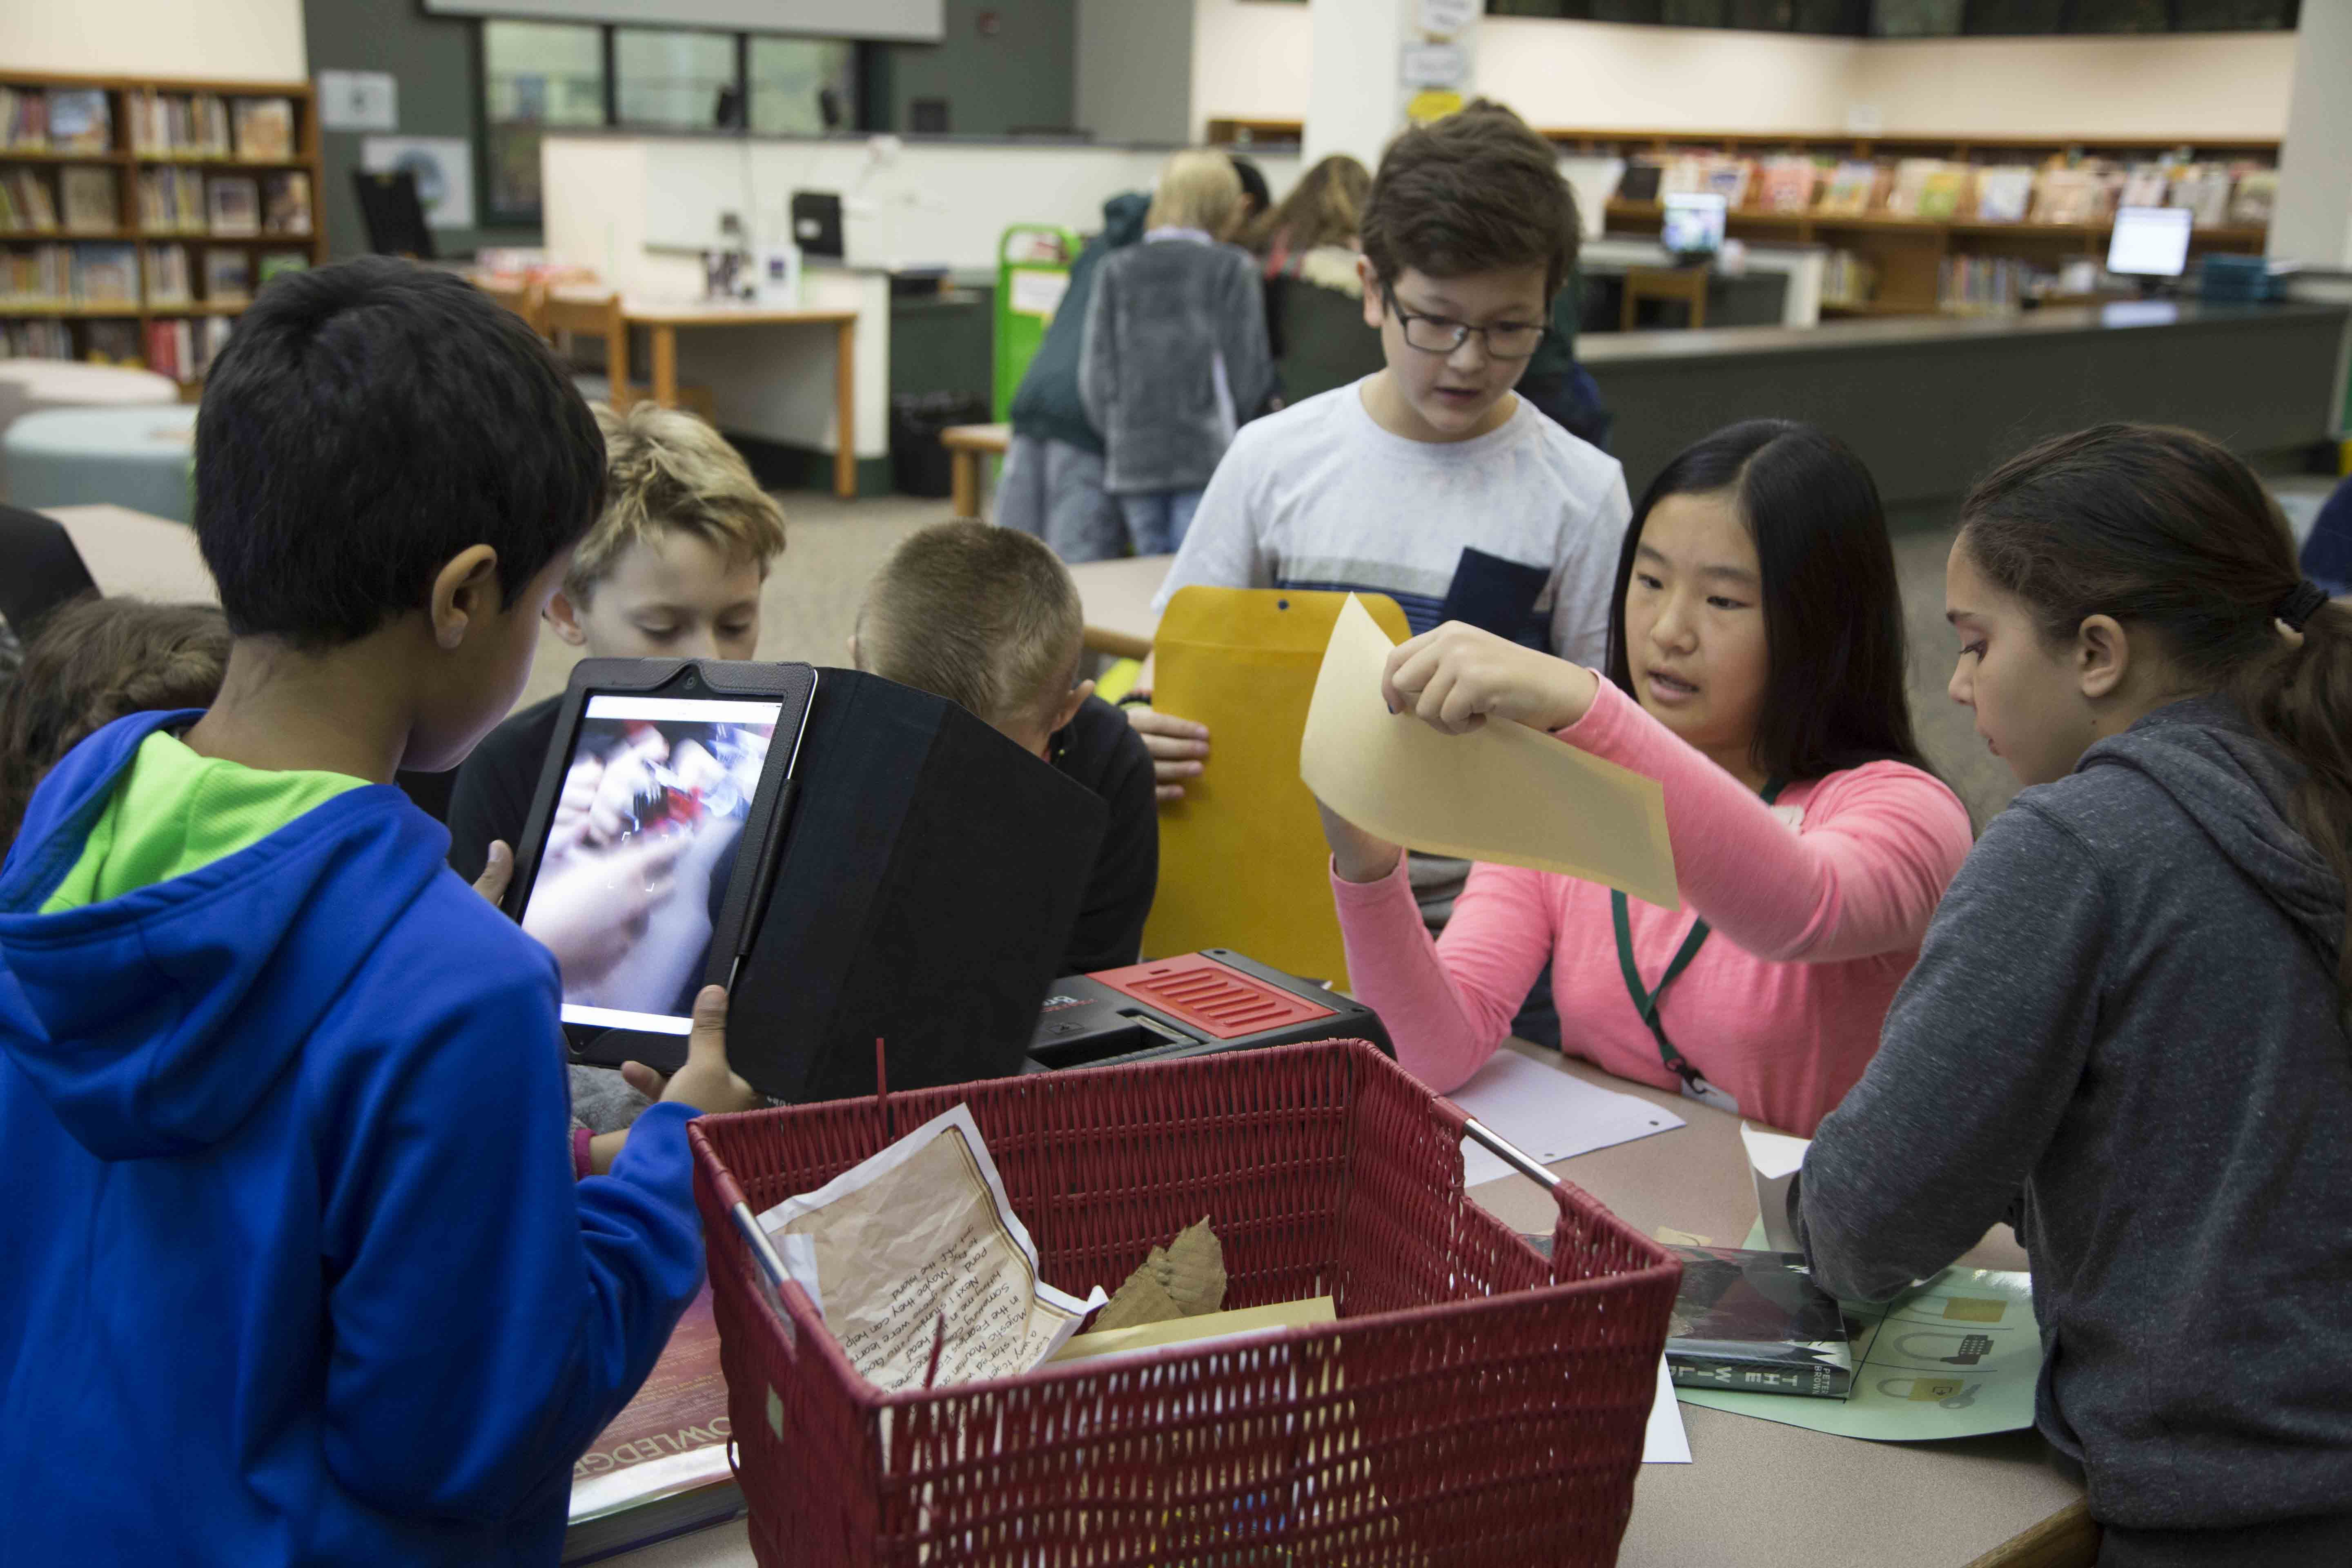 Students Break Out of the Box with Interactive Library Challenge